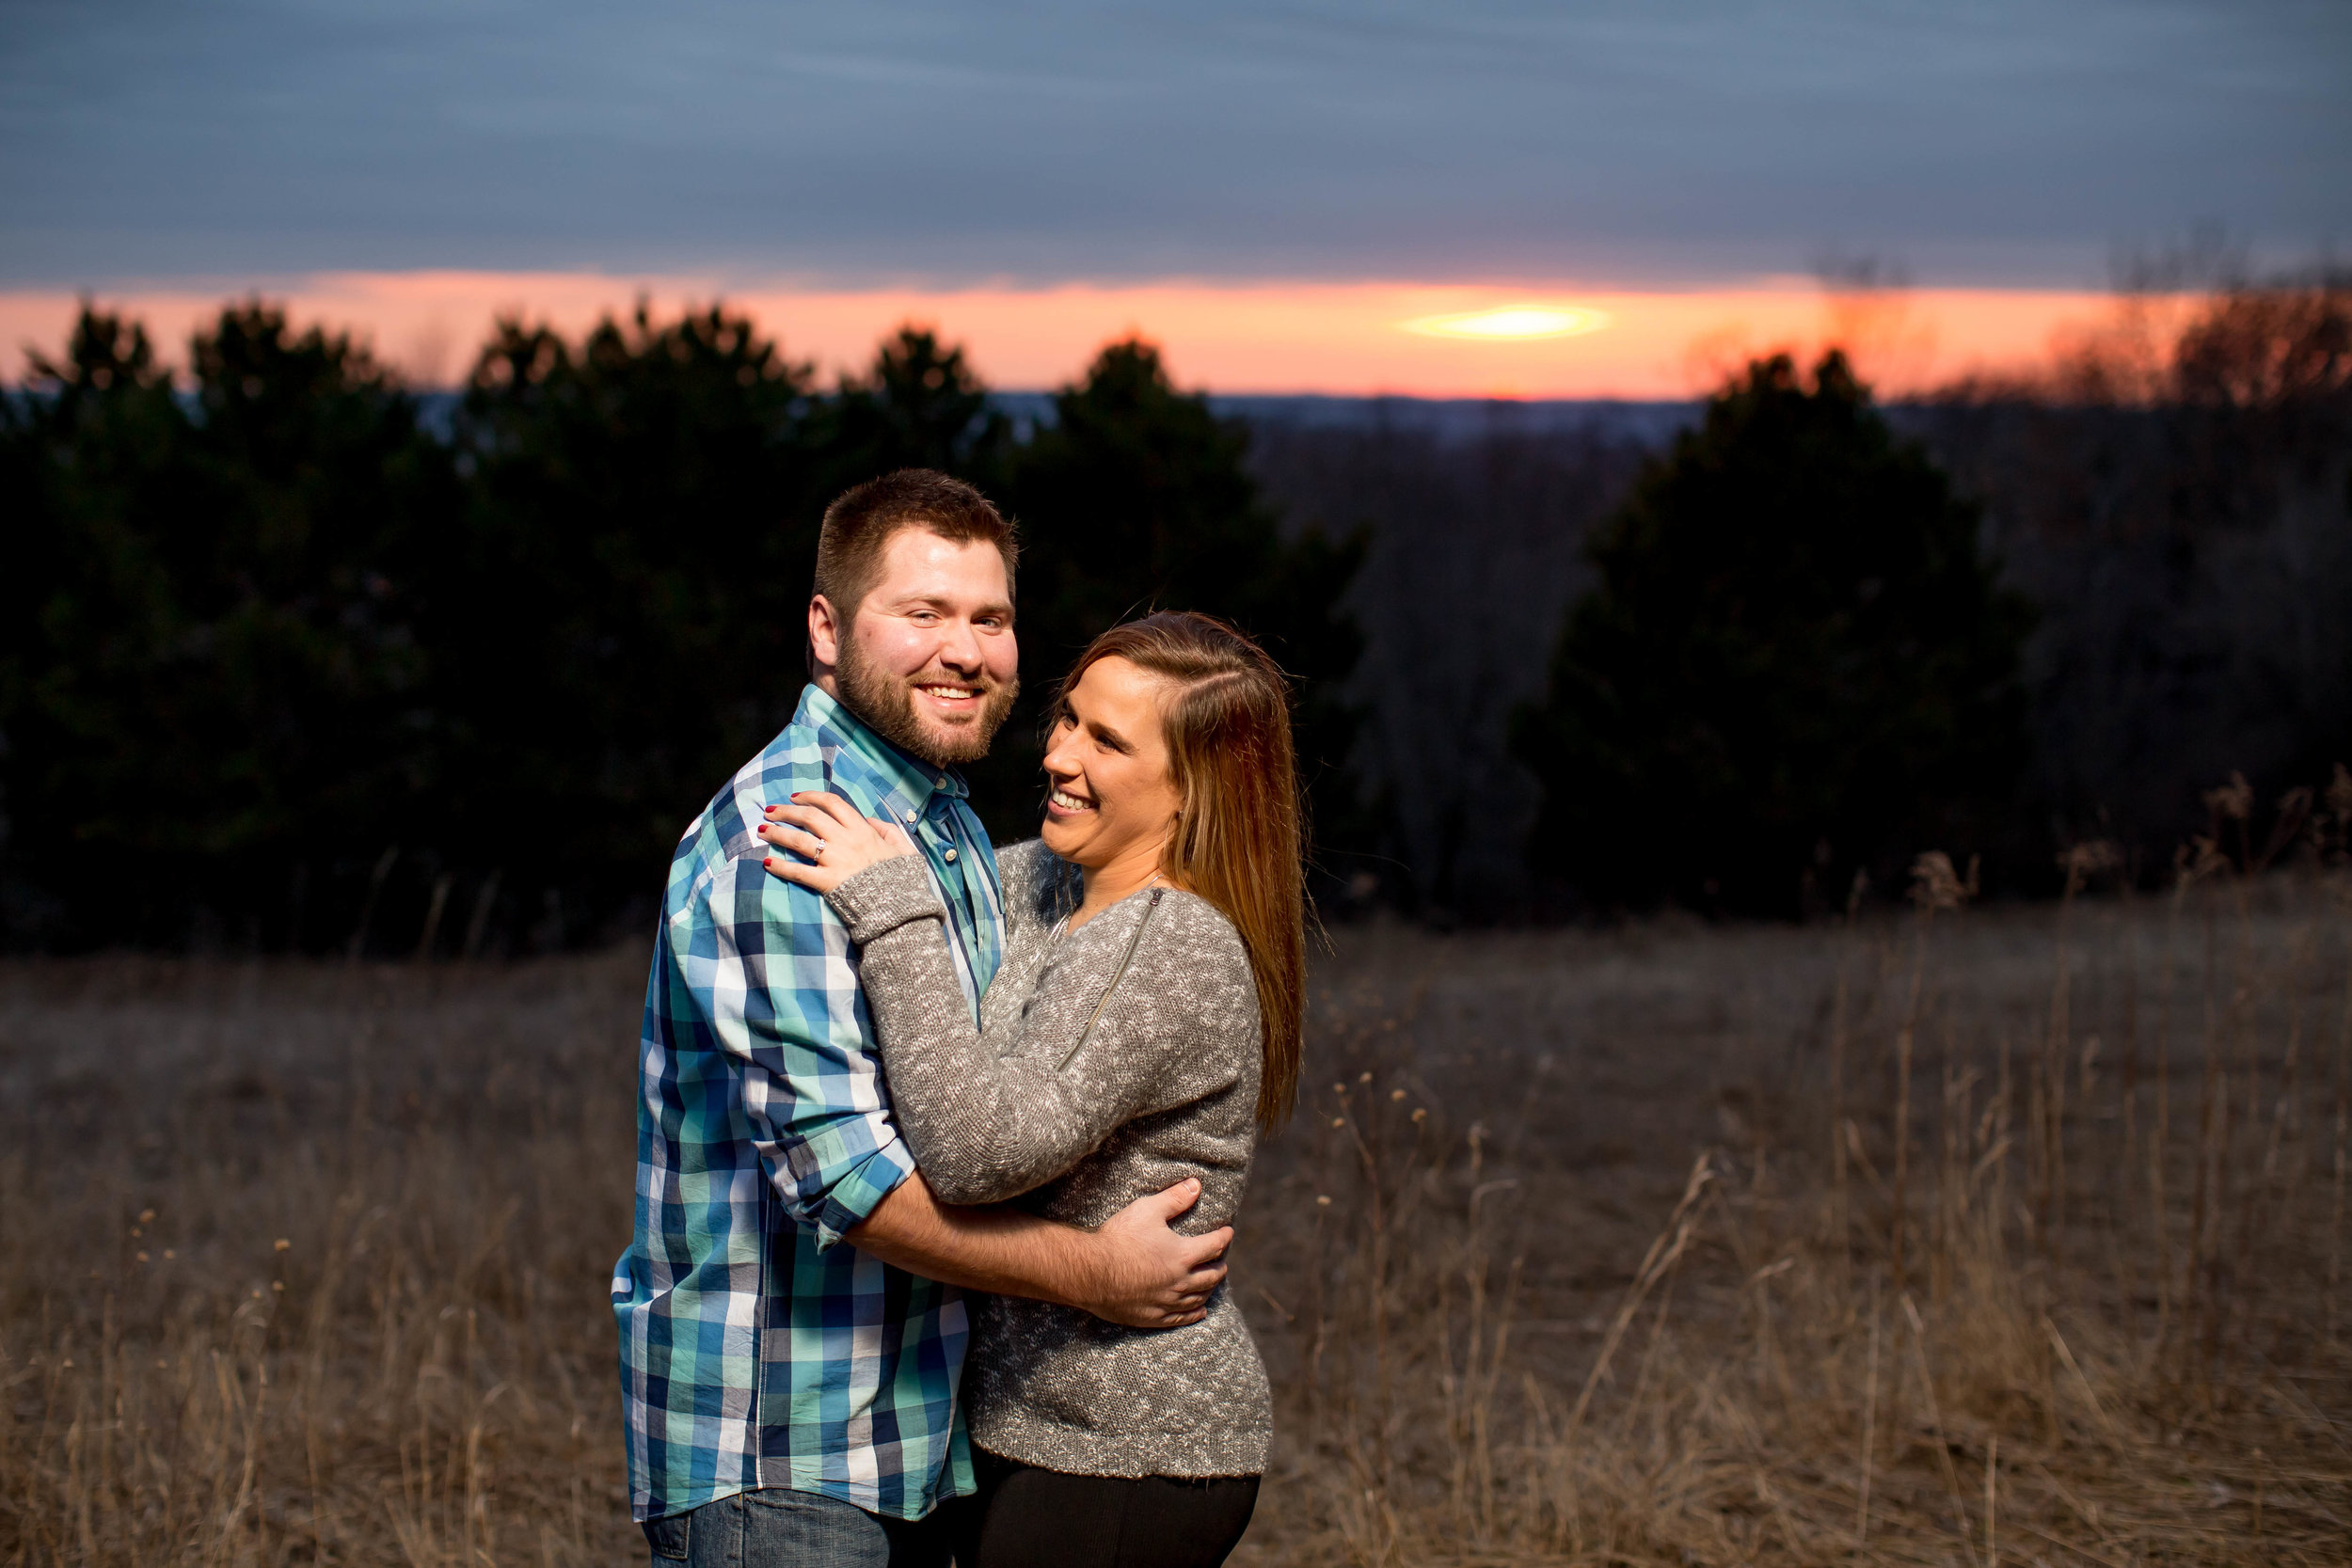 Jessa and Andy Engagement 2017-5796.jpg